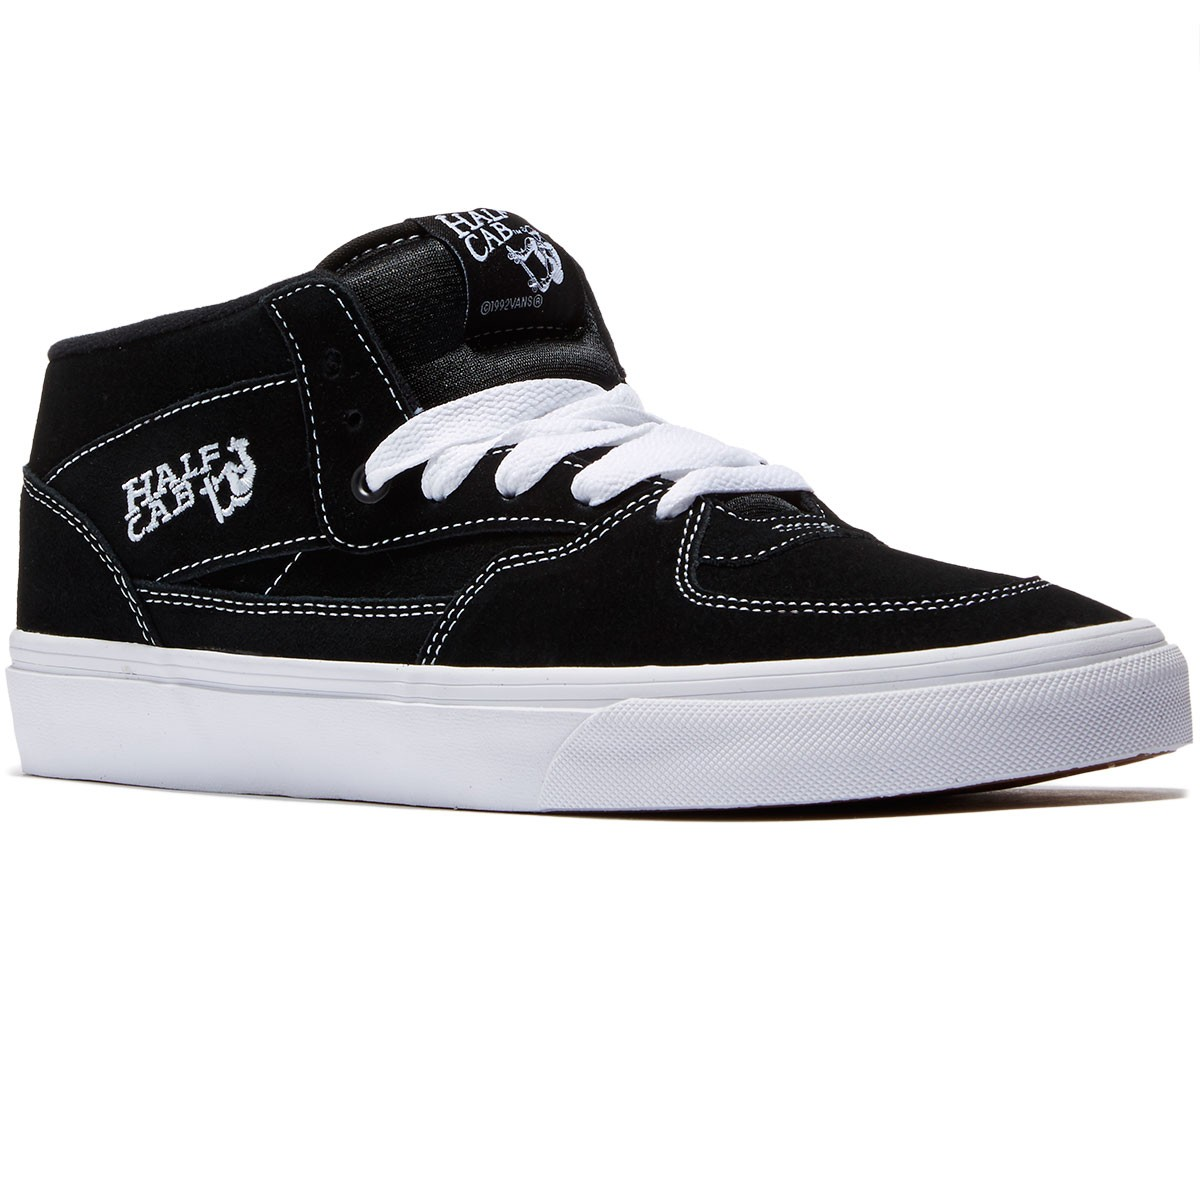 Vans Half Cab Shoes - Black